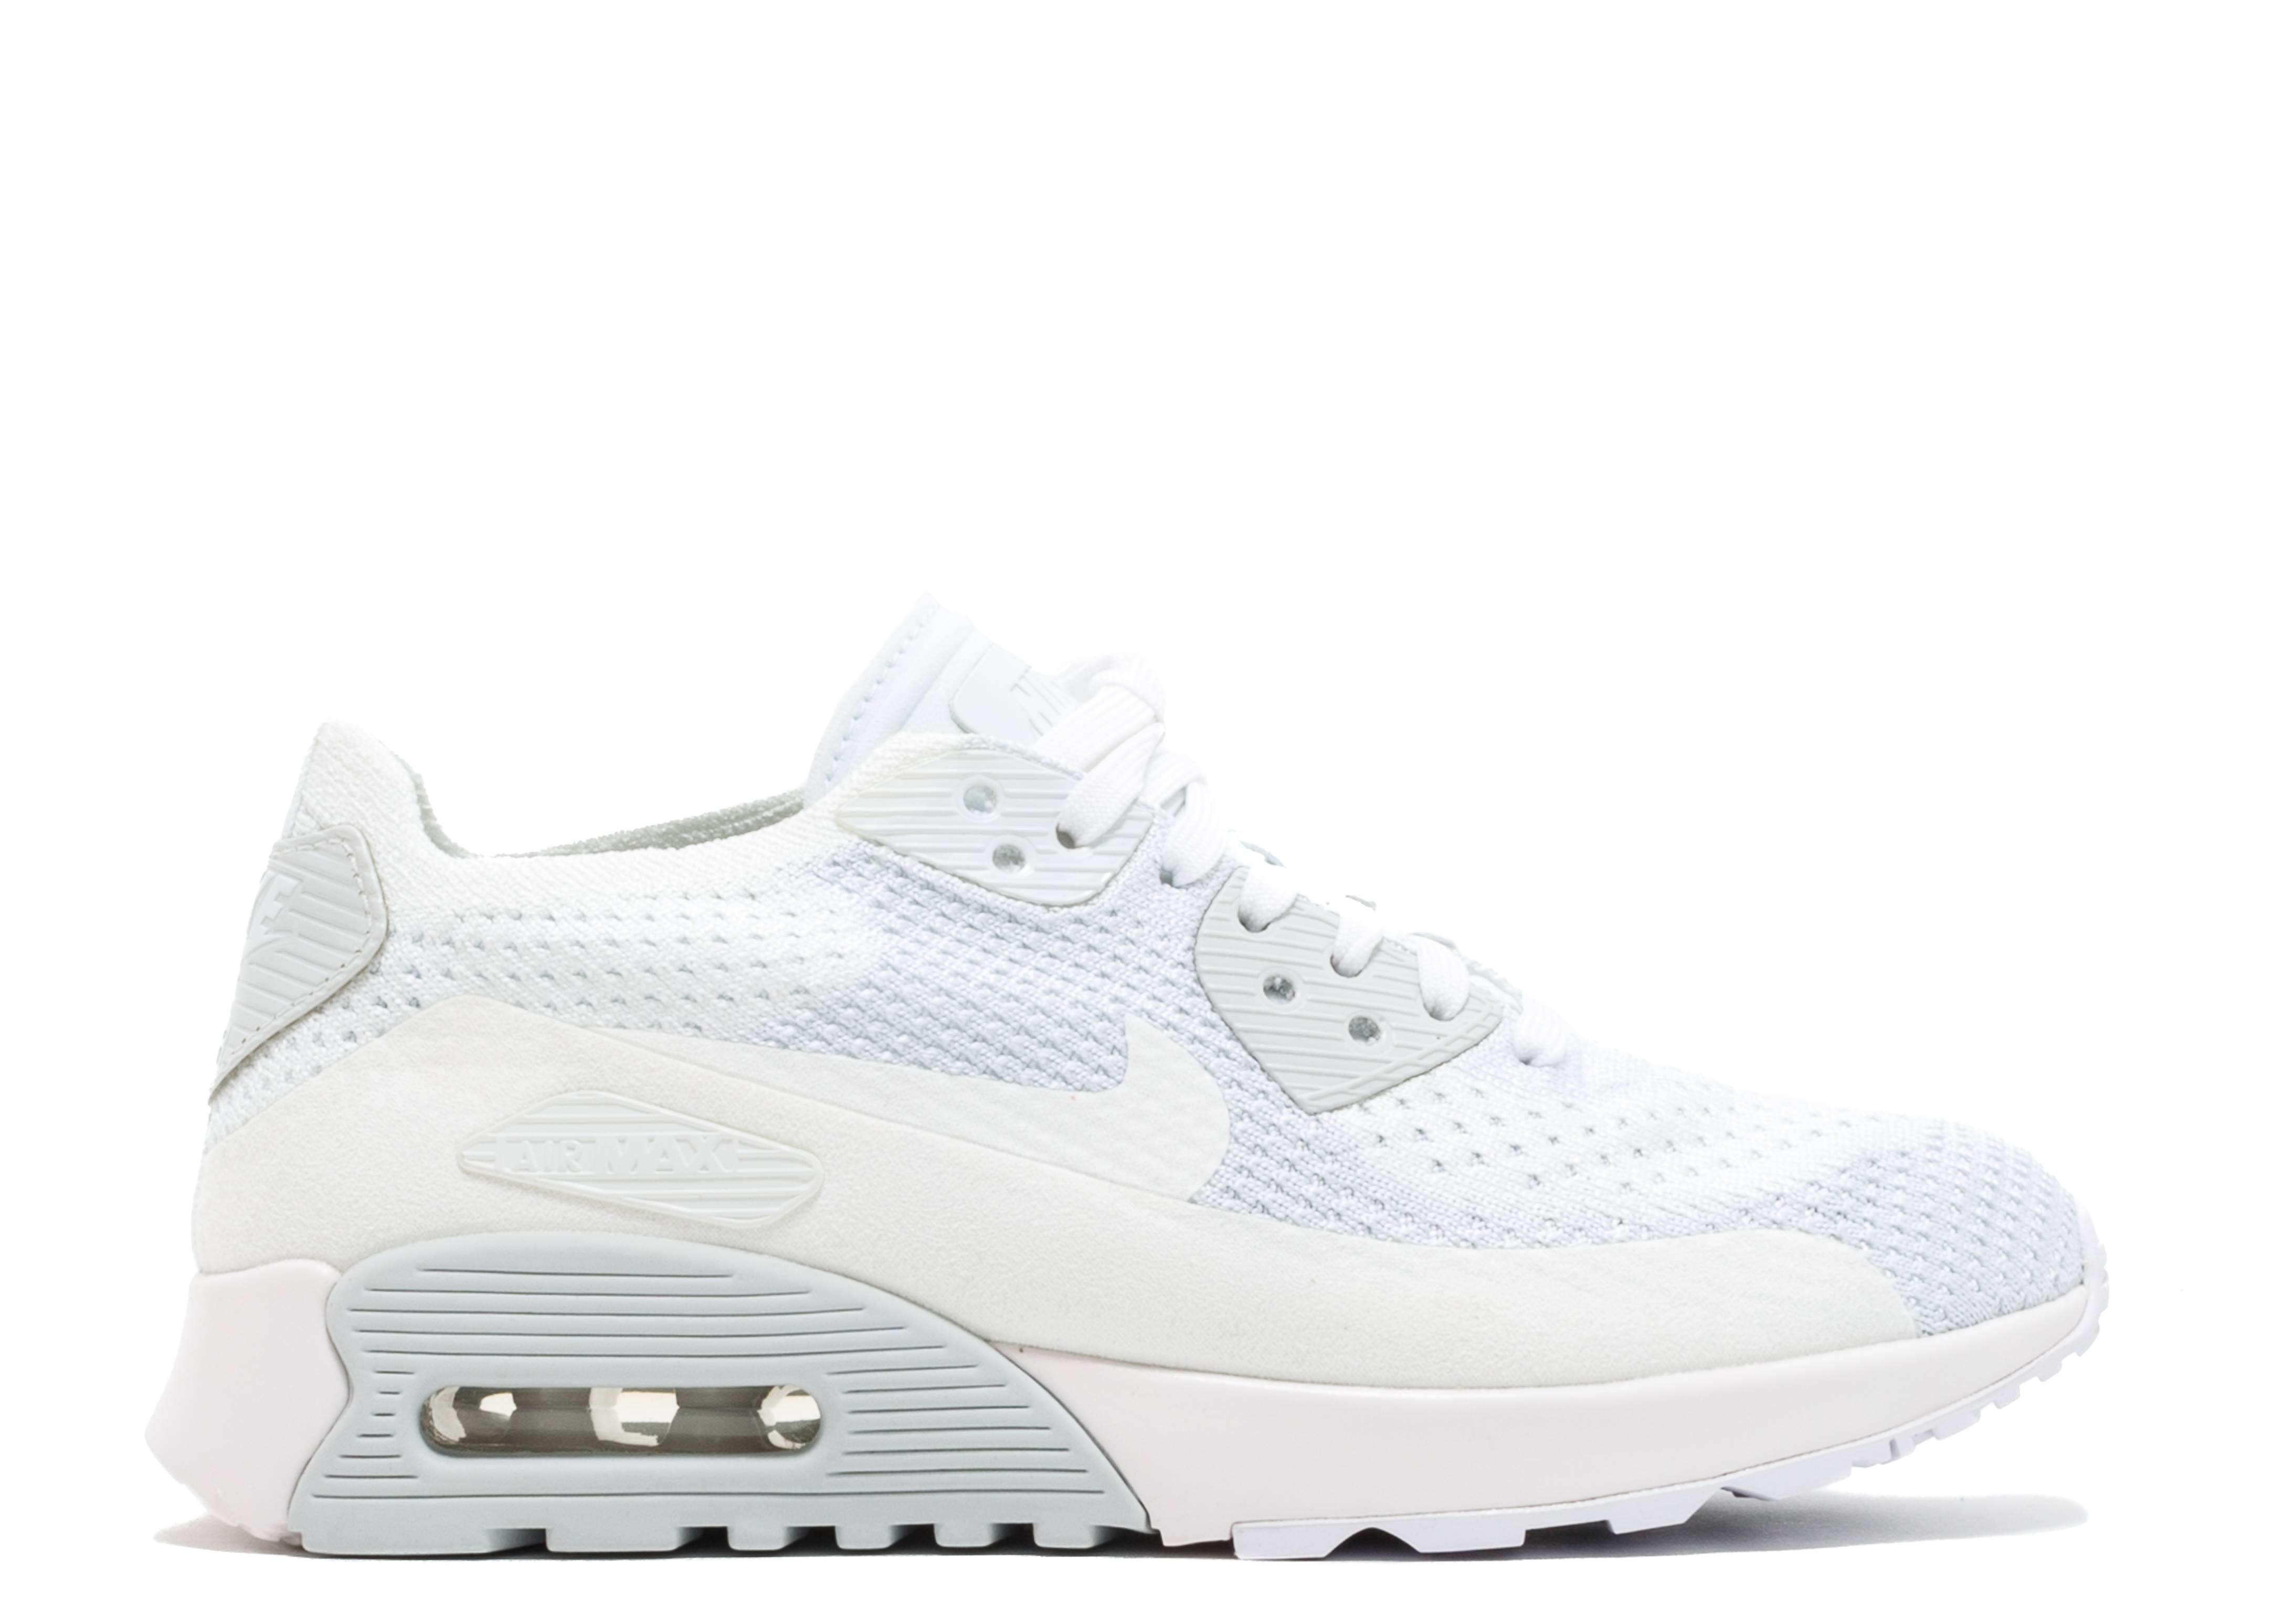 reputable site eb9ac f9be9 W Nike Air Max 90 Ultra 2.0 Flyknit